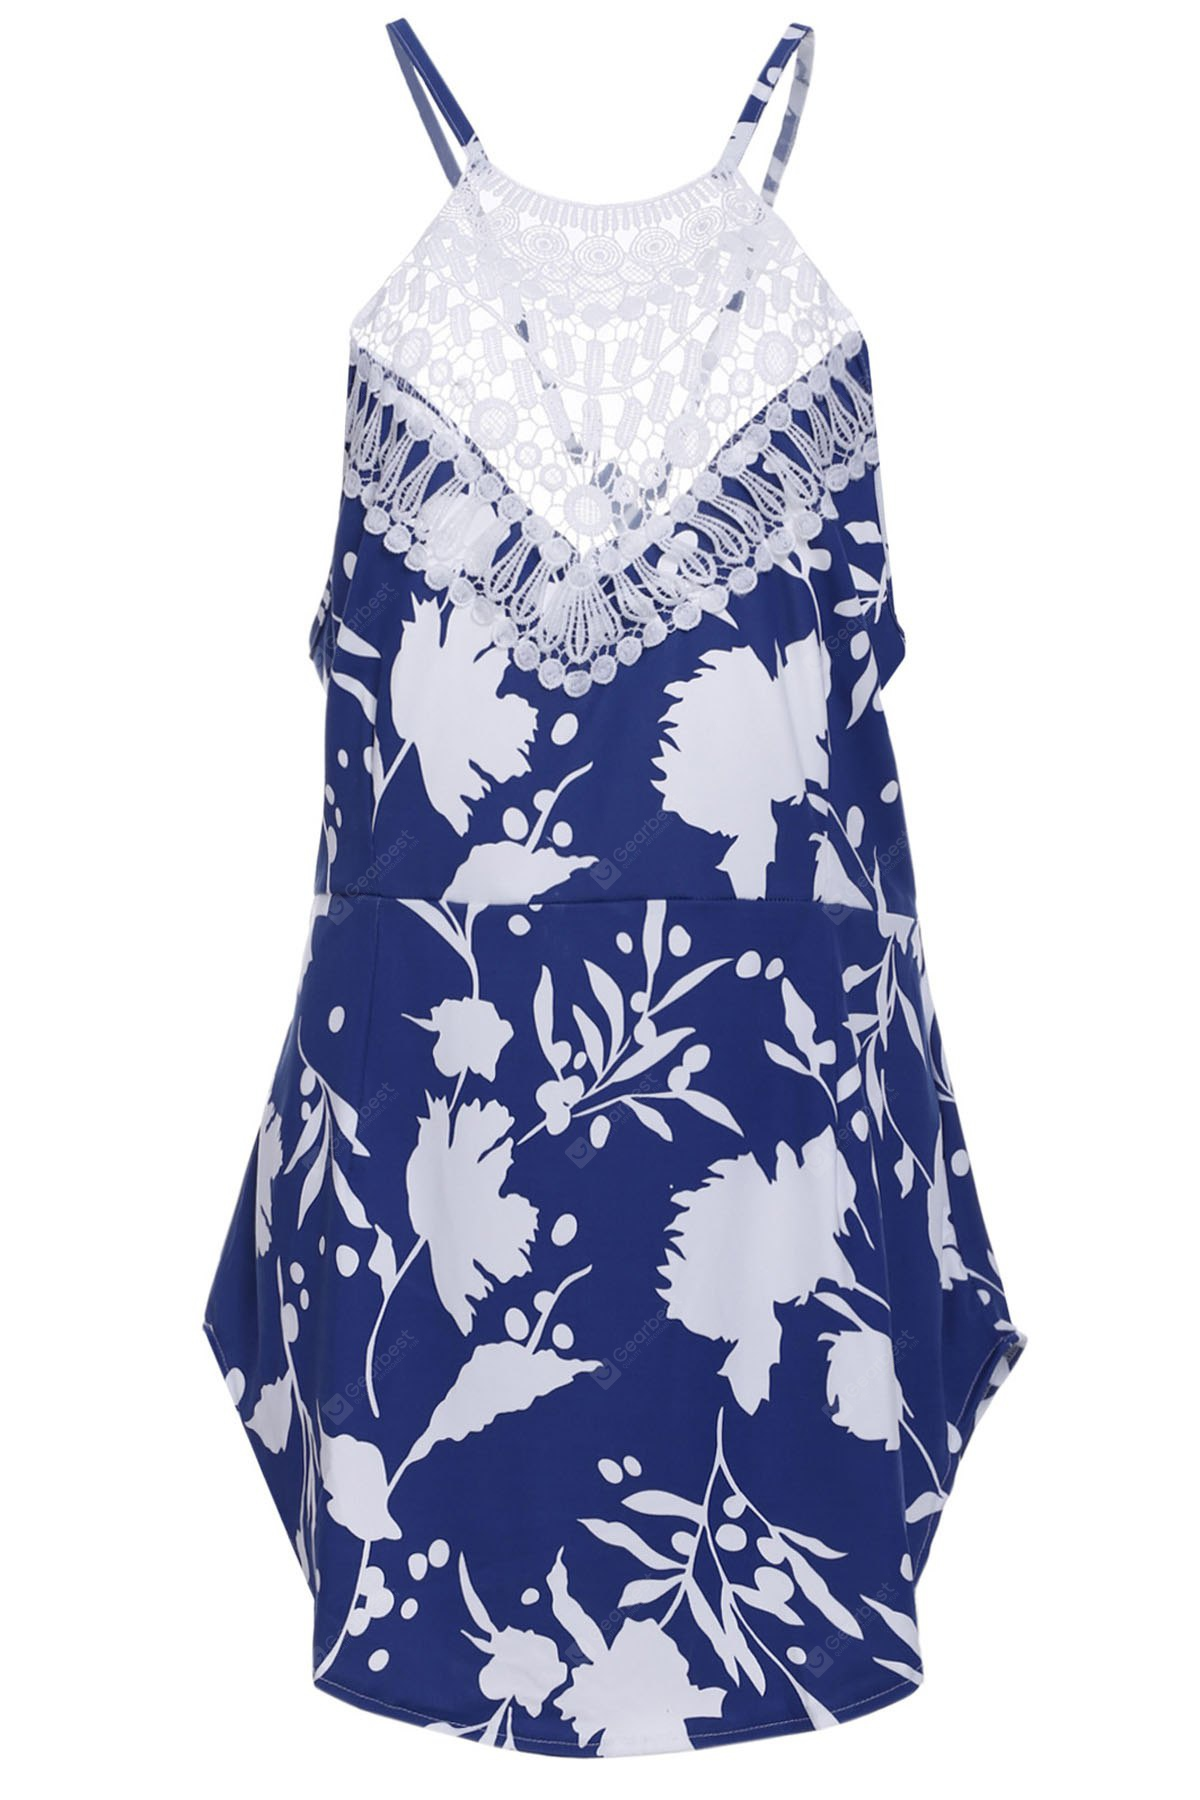 Chic Round Collar Sleeveless Floral Print Backless Women's Dress